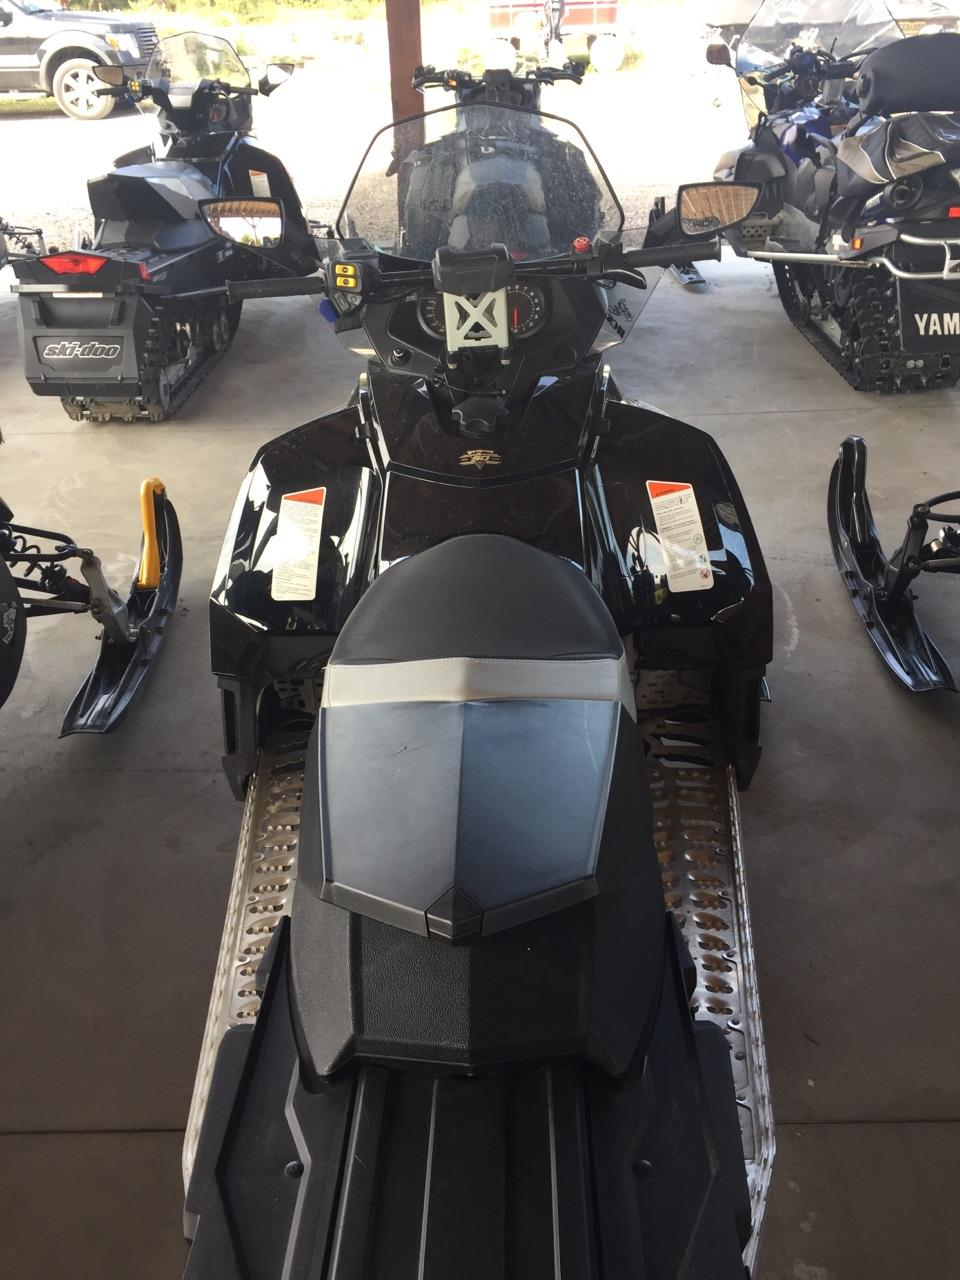 2009 Ski Doo GSX 1200 LTD | 2 of 2